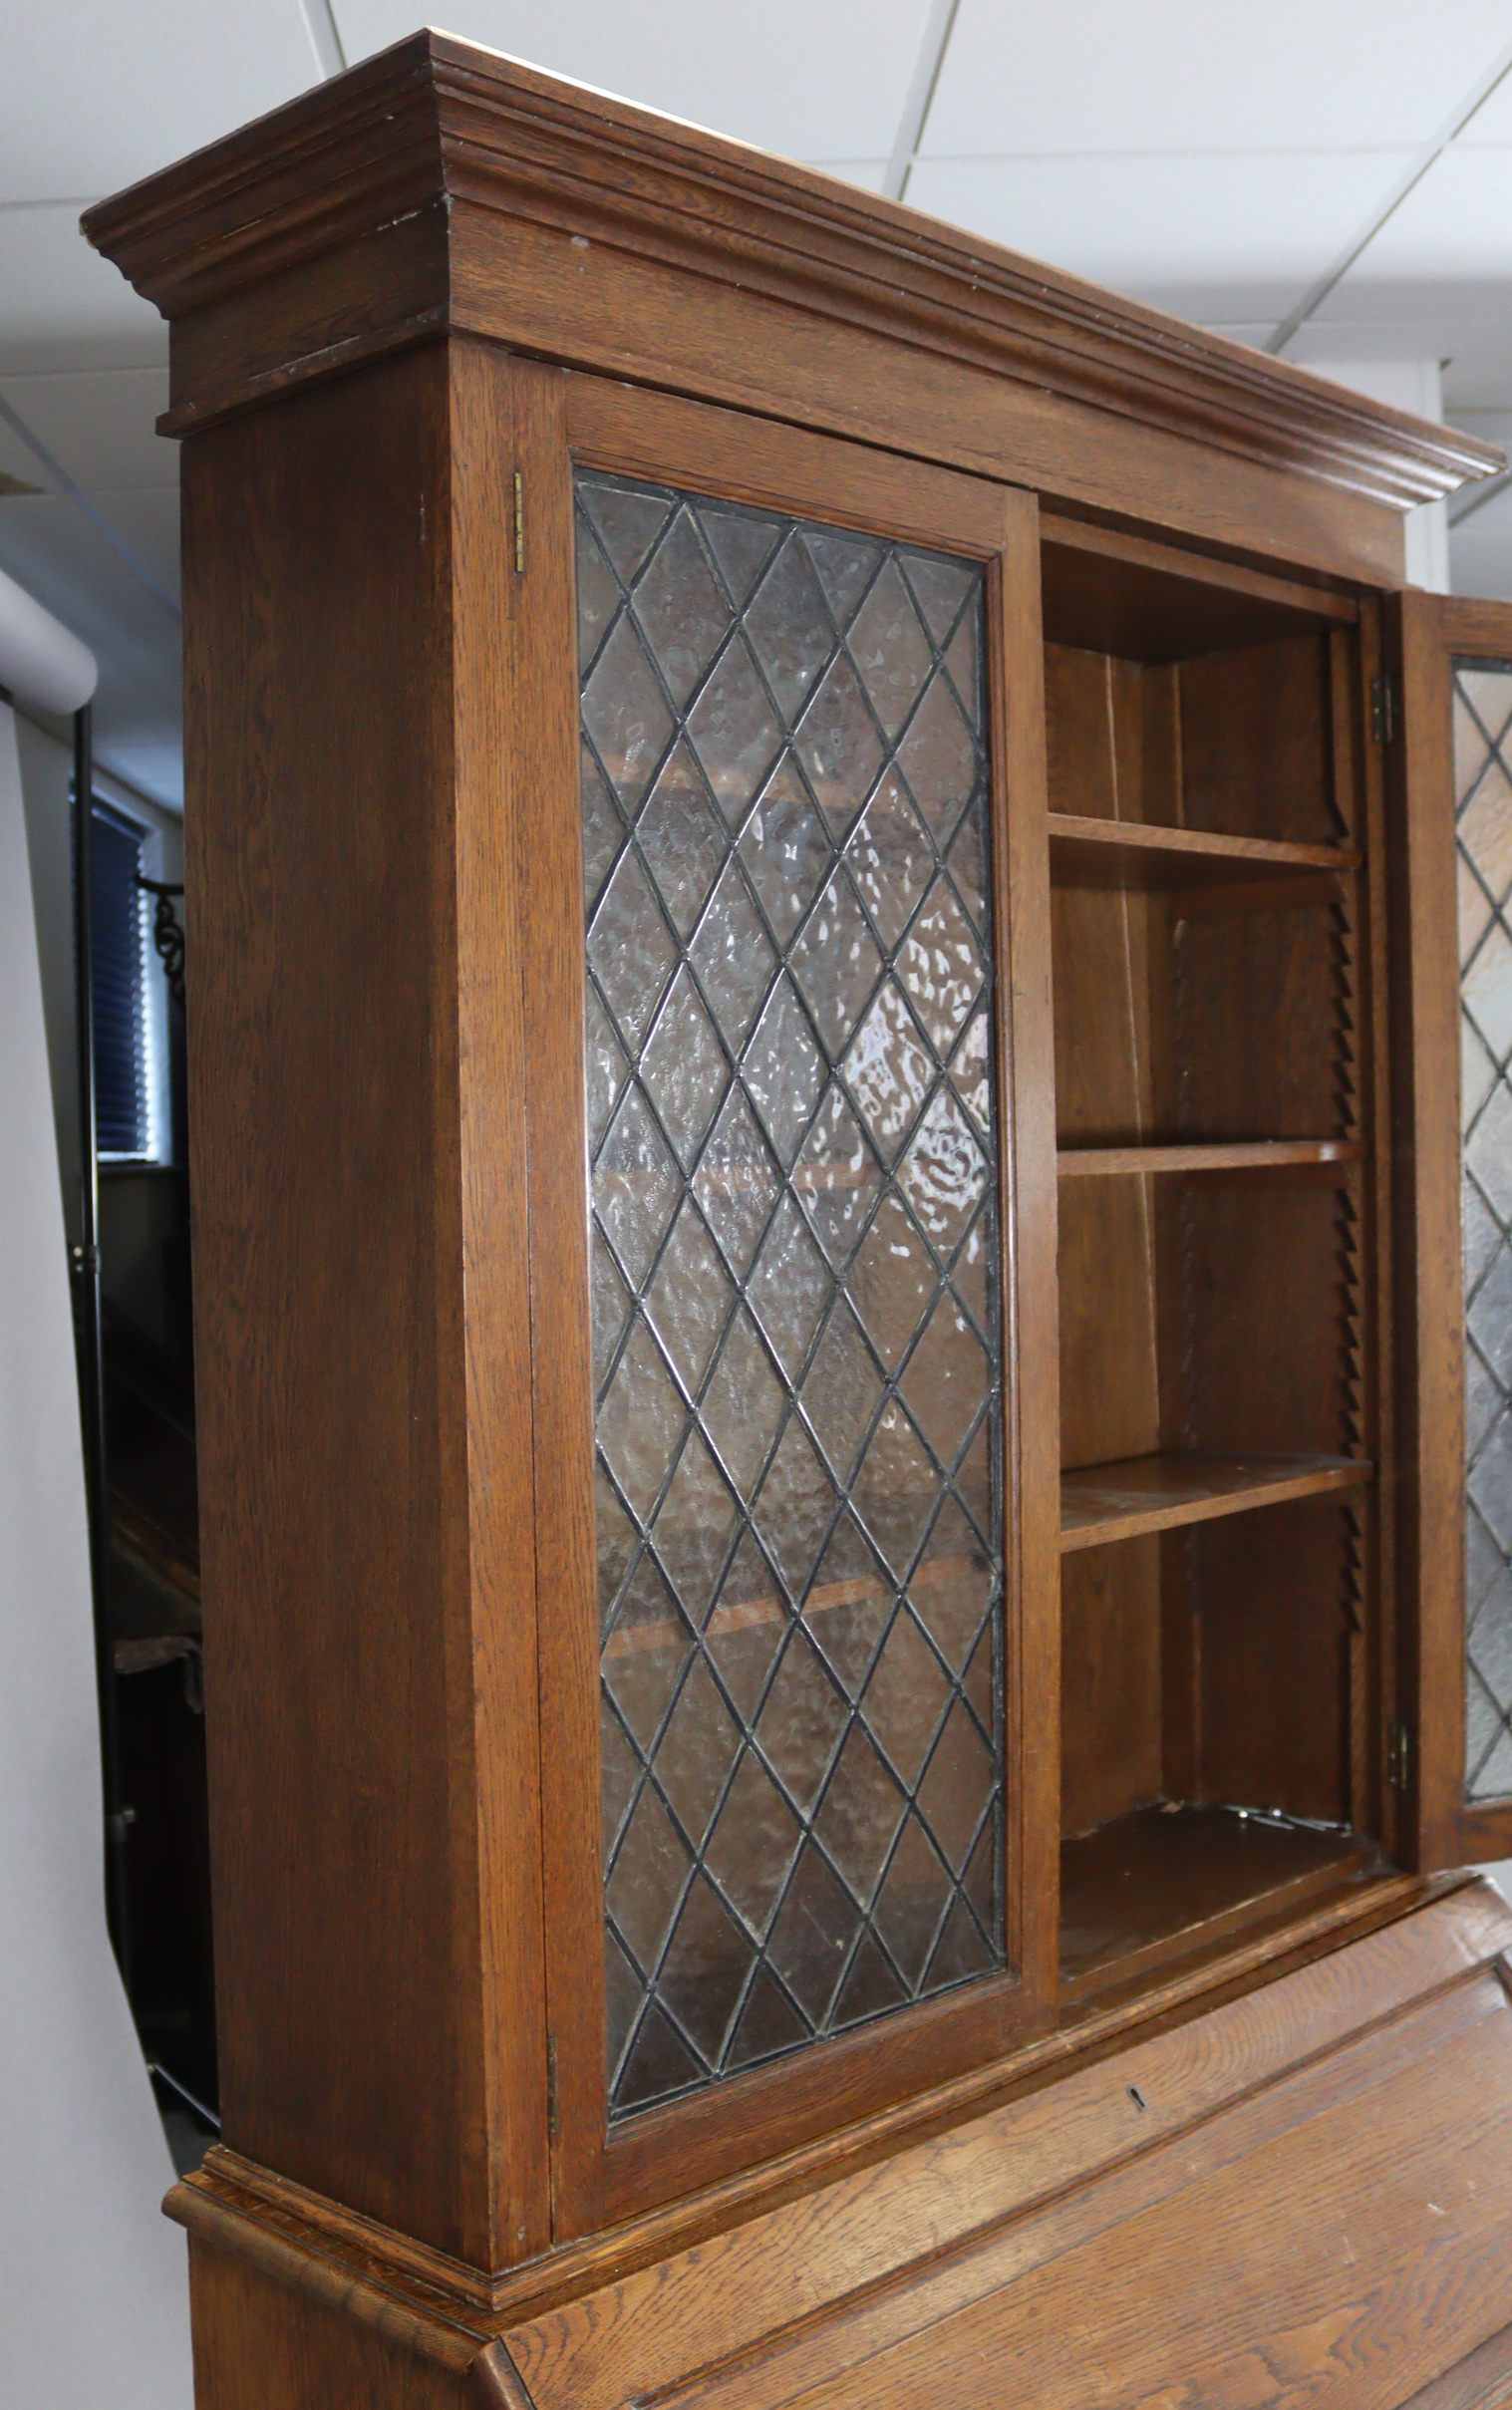 A late 19th/early 20th century oak bureau-bookcase with moulded cornice above a pair of leaded - Image 5 of 7